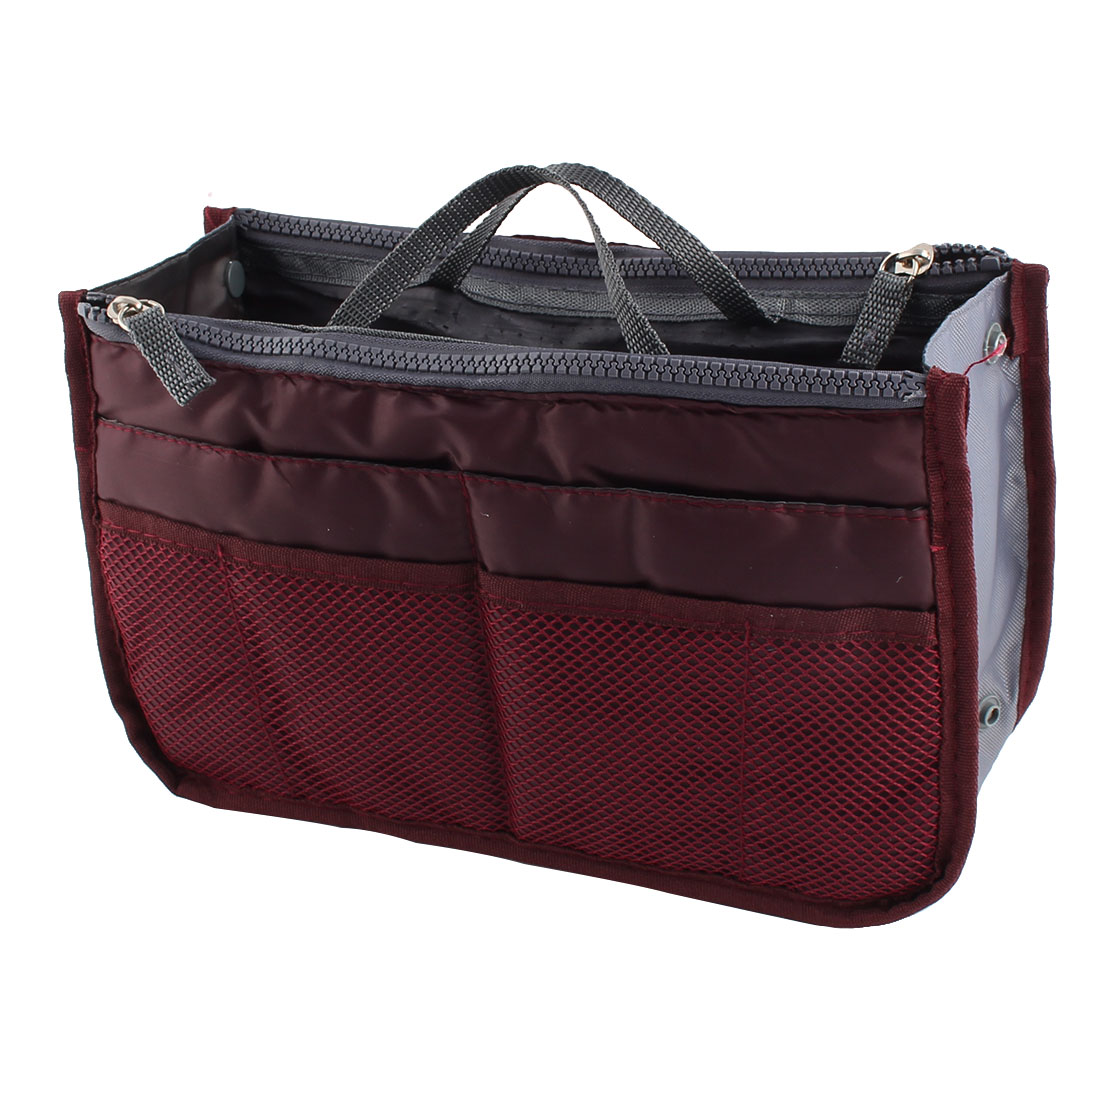 Portable Multi-functional Storage Bag Handbag Organizer Holder Container Burgundy